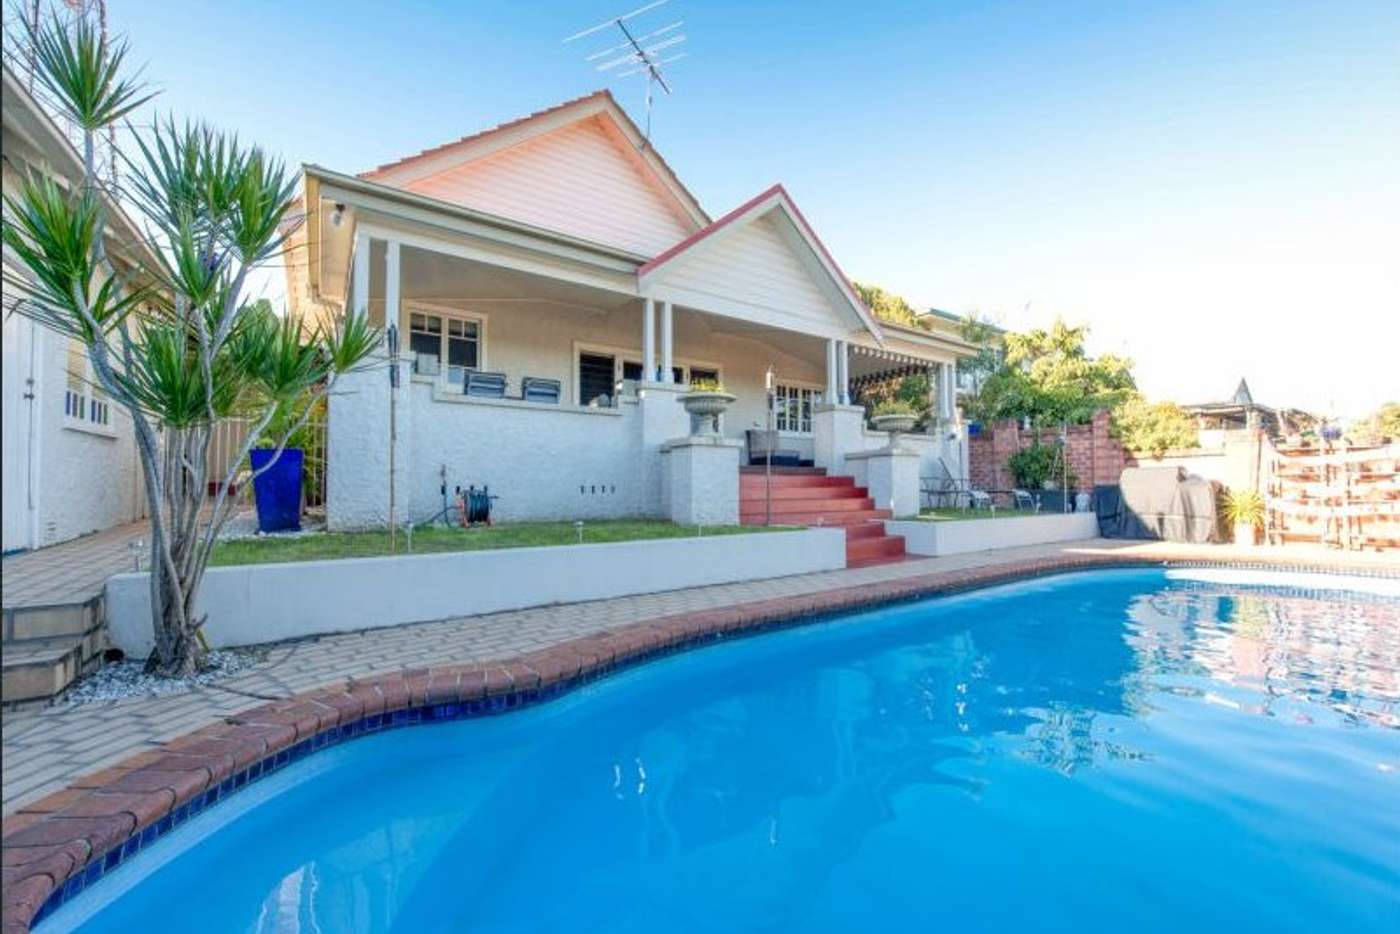 Main view of Homely house listing, 22 Bent Street, South Grafton NSW 2460